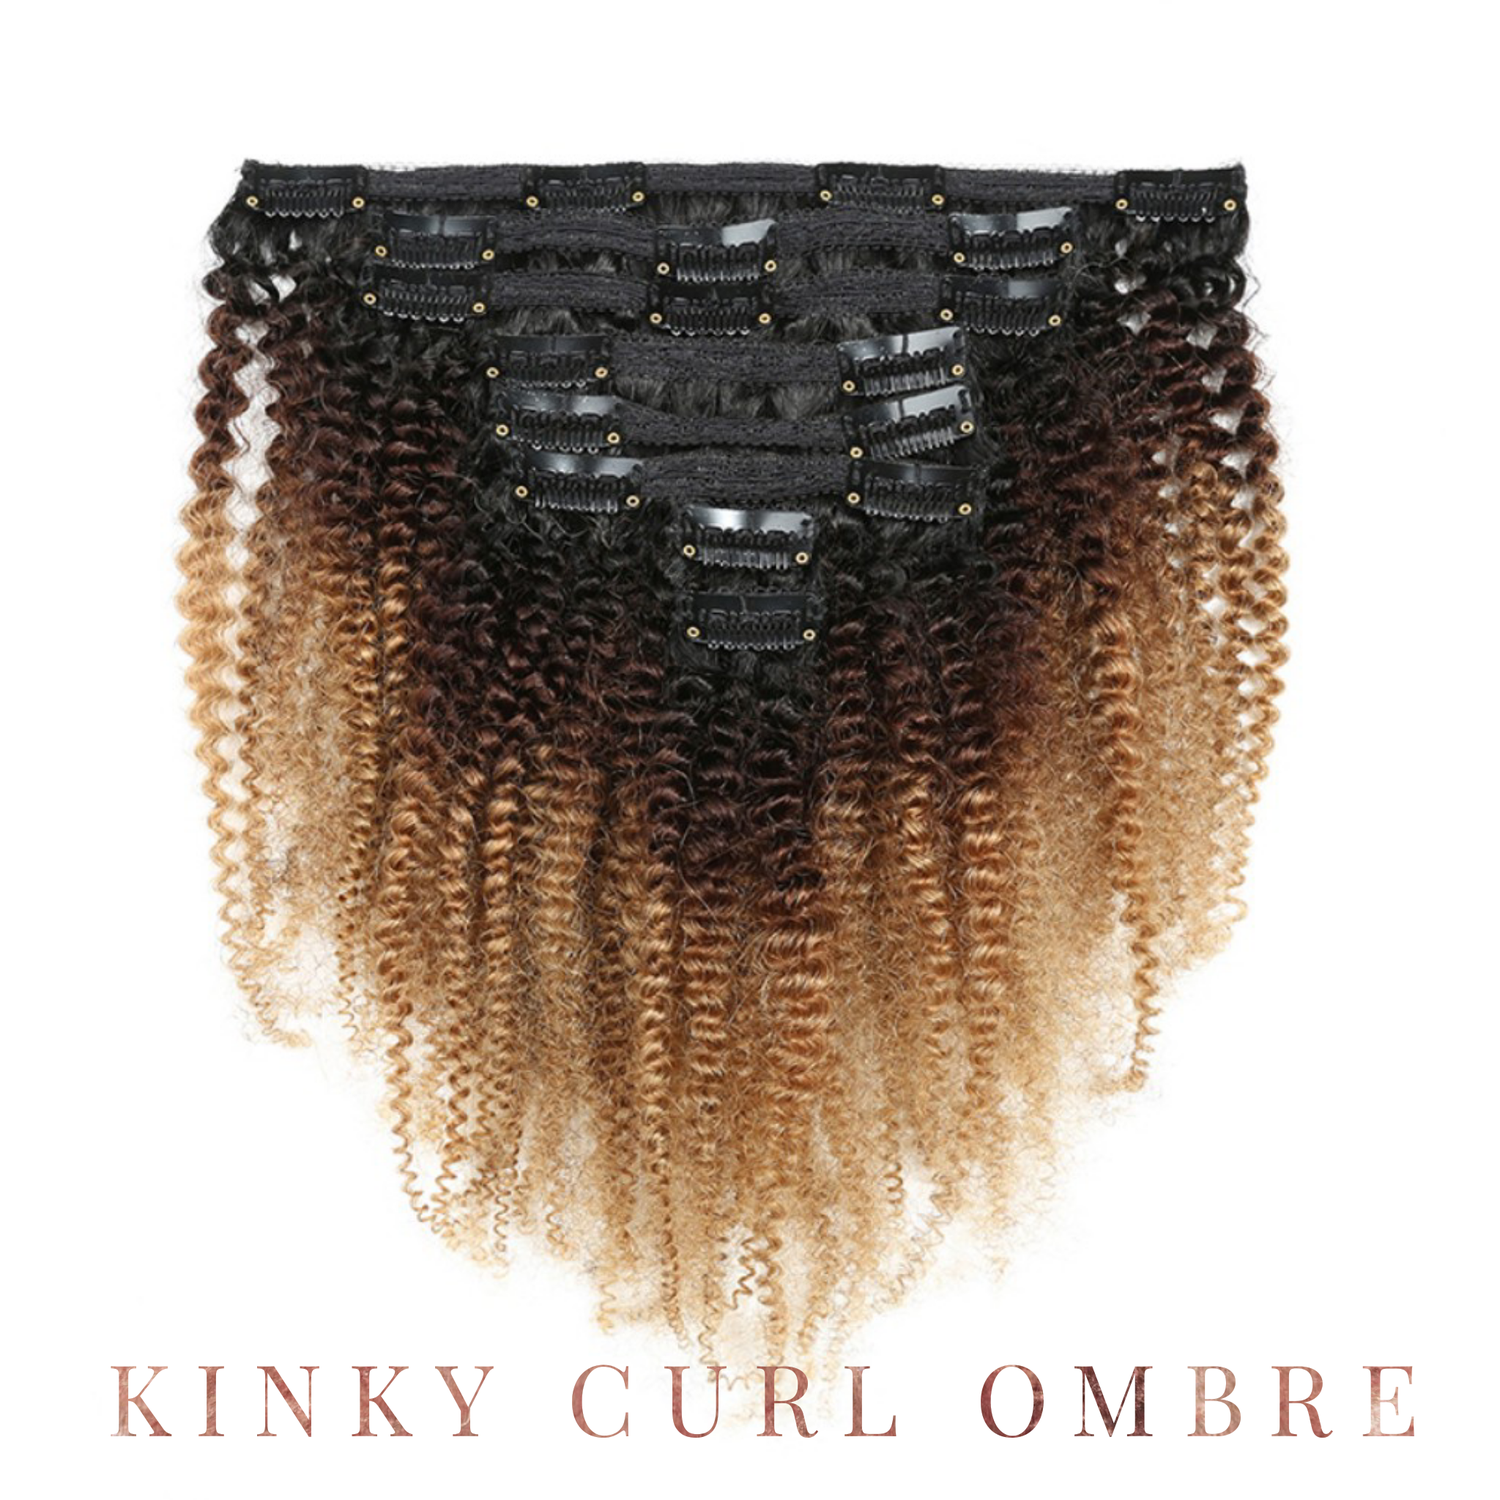 Image of Kinky Curl Ombre Clip Ins and Bundles